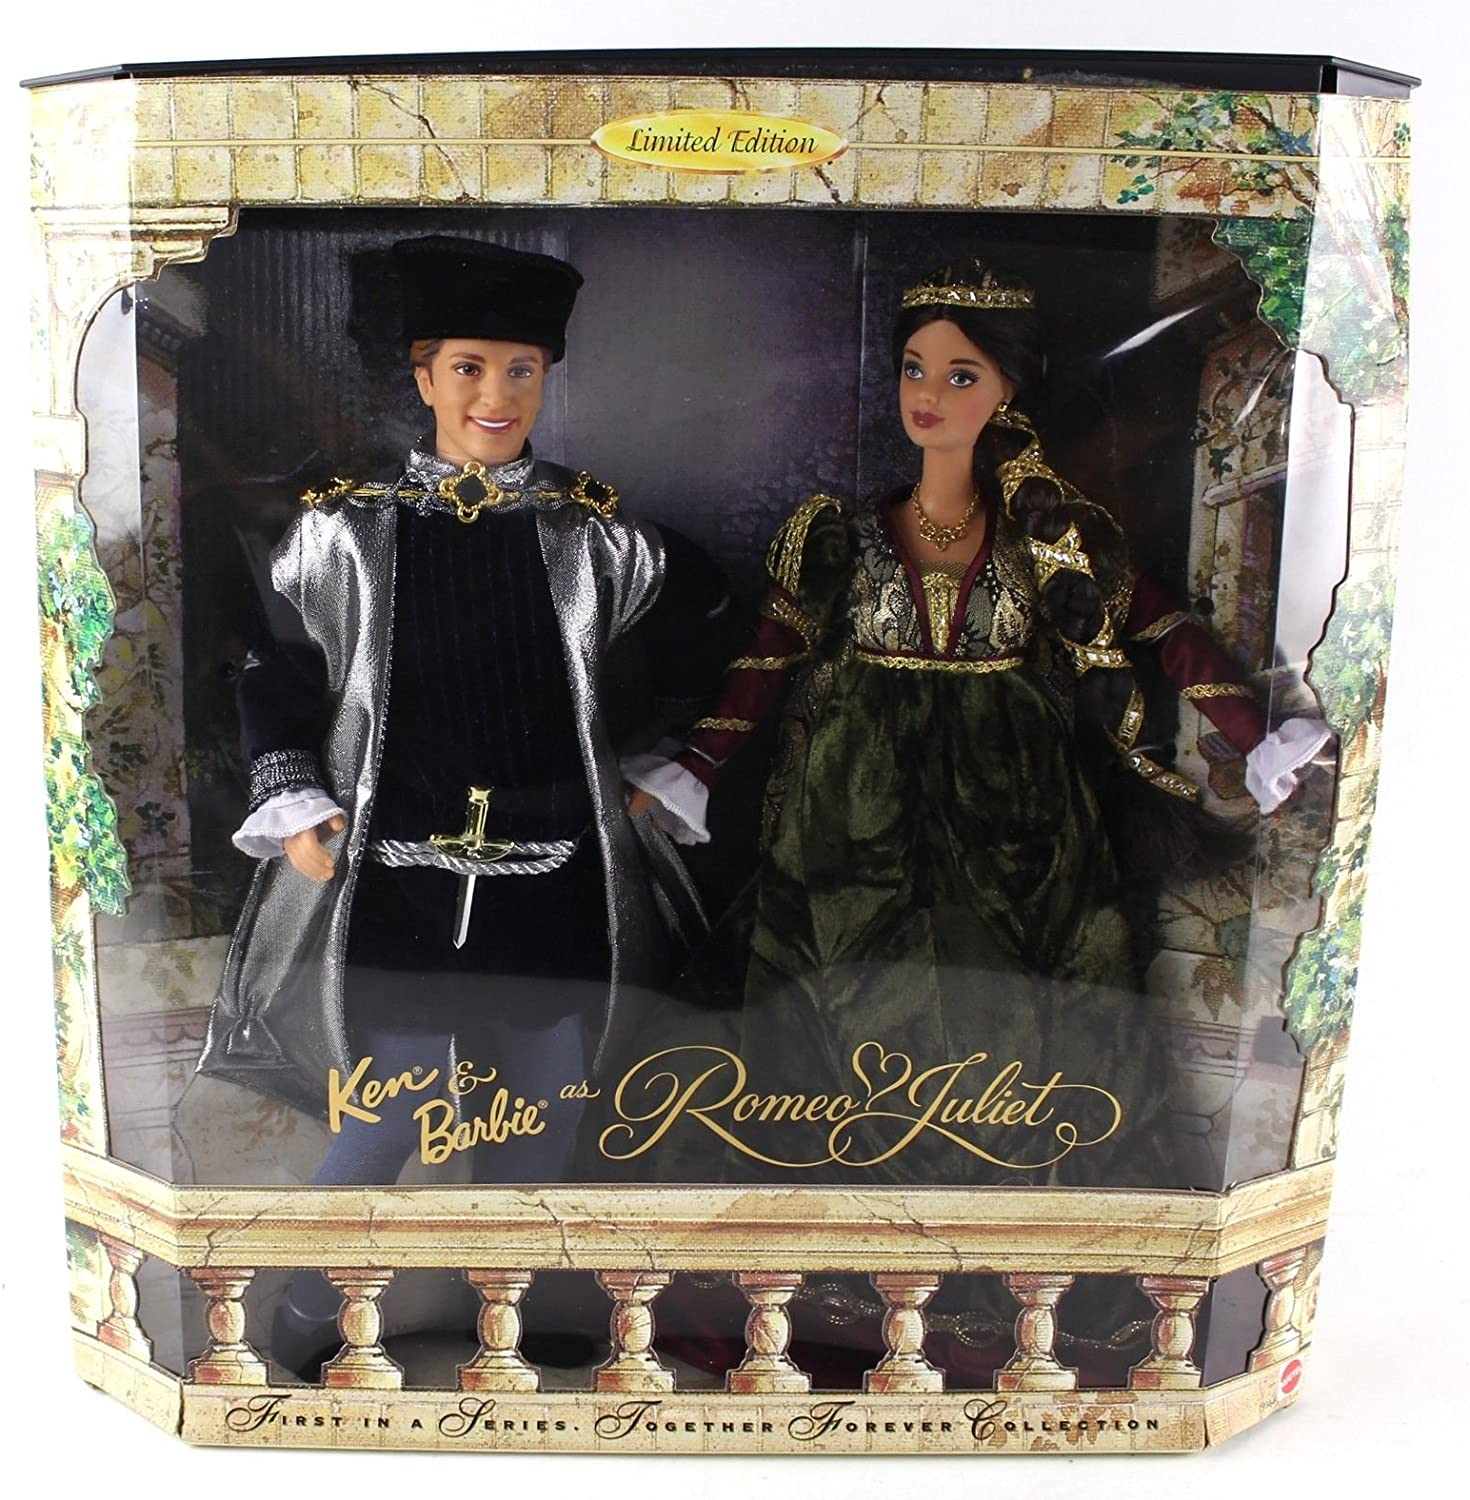 Barbie & Ken As Romeo & Juliet Limited Edition Together Forever Collection (1997) by Mattel